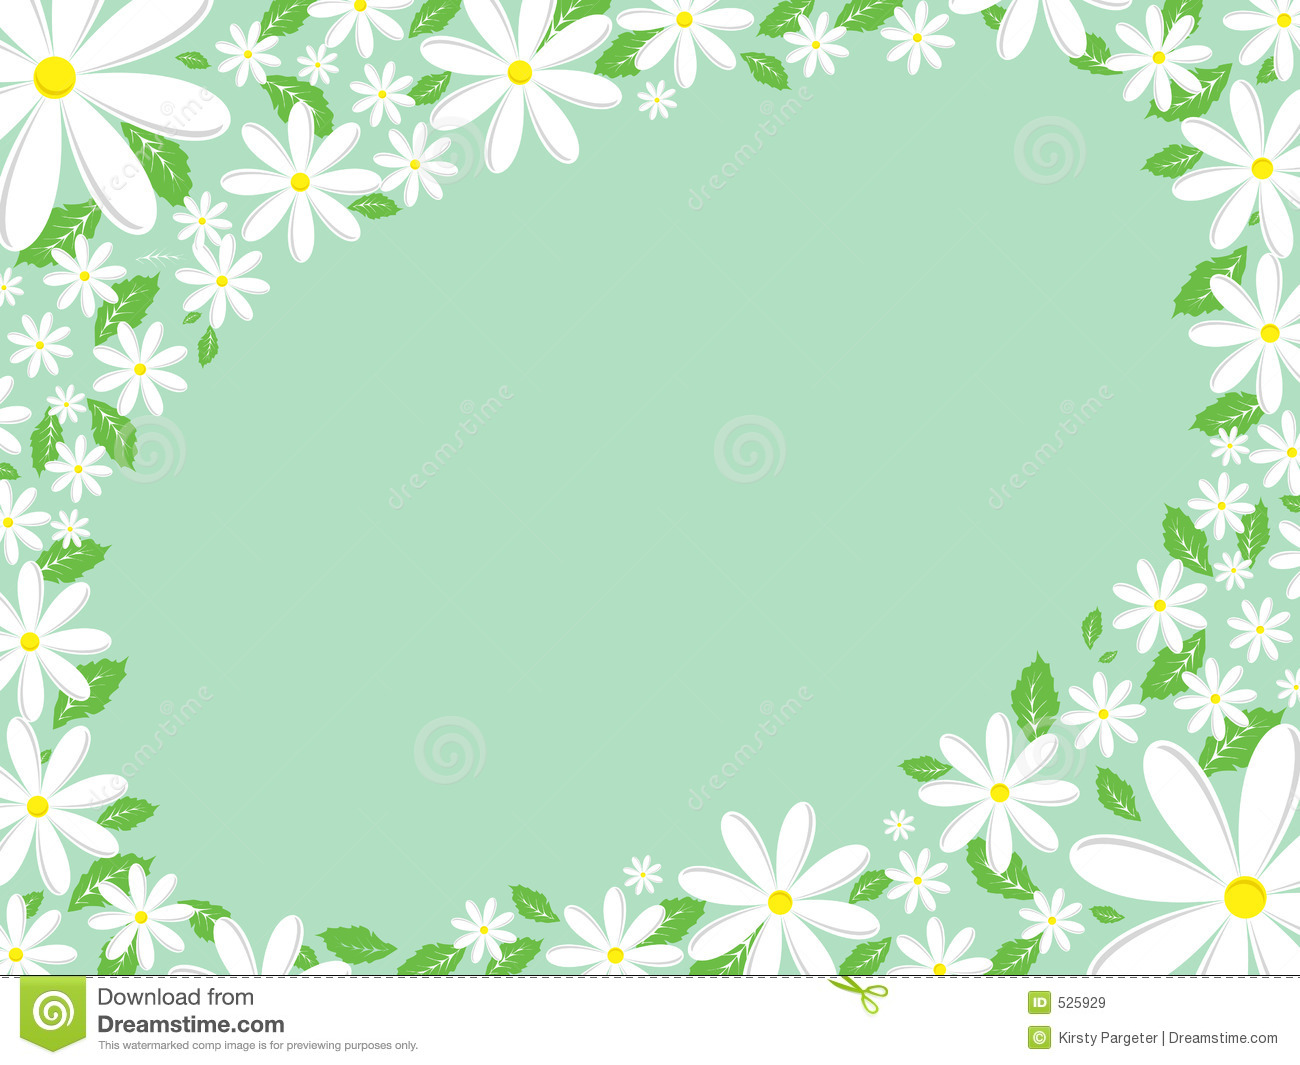 Daisy Border Royalty Free Stock Images   Image  525929